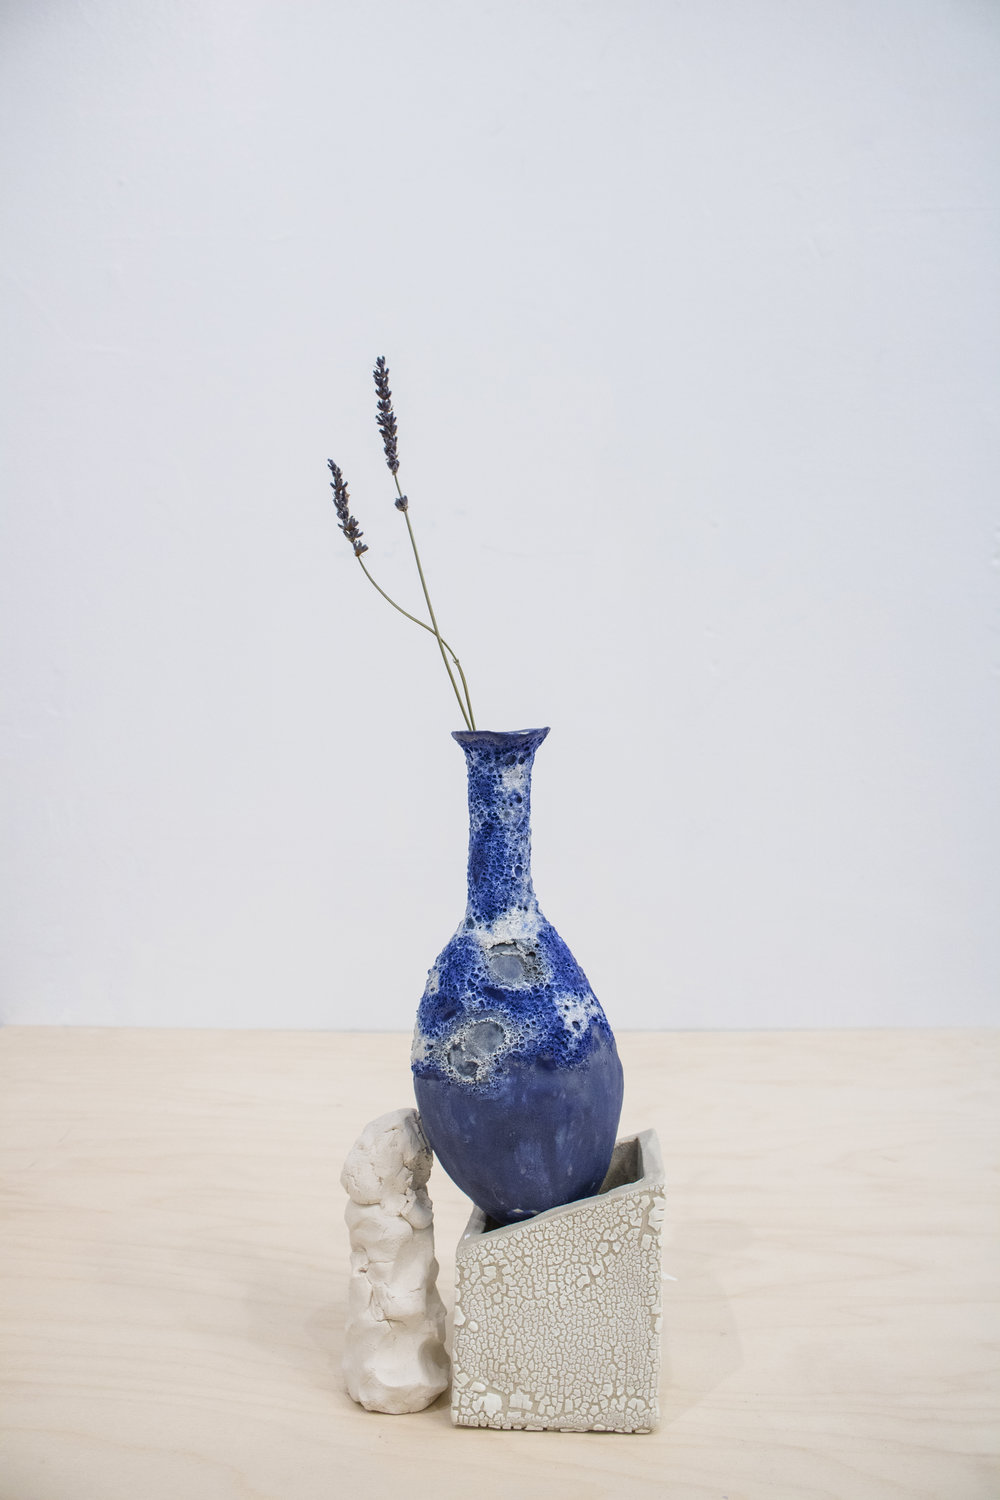 Bule Holder II, 2017, fired clay, glazed stoneware, lavendar